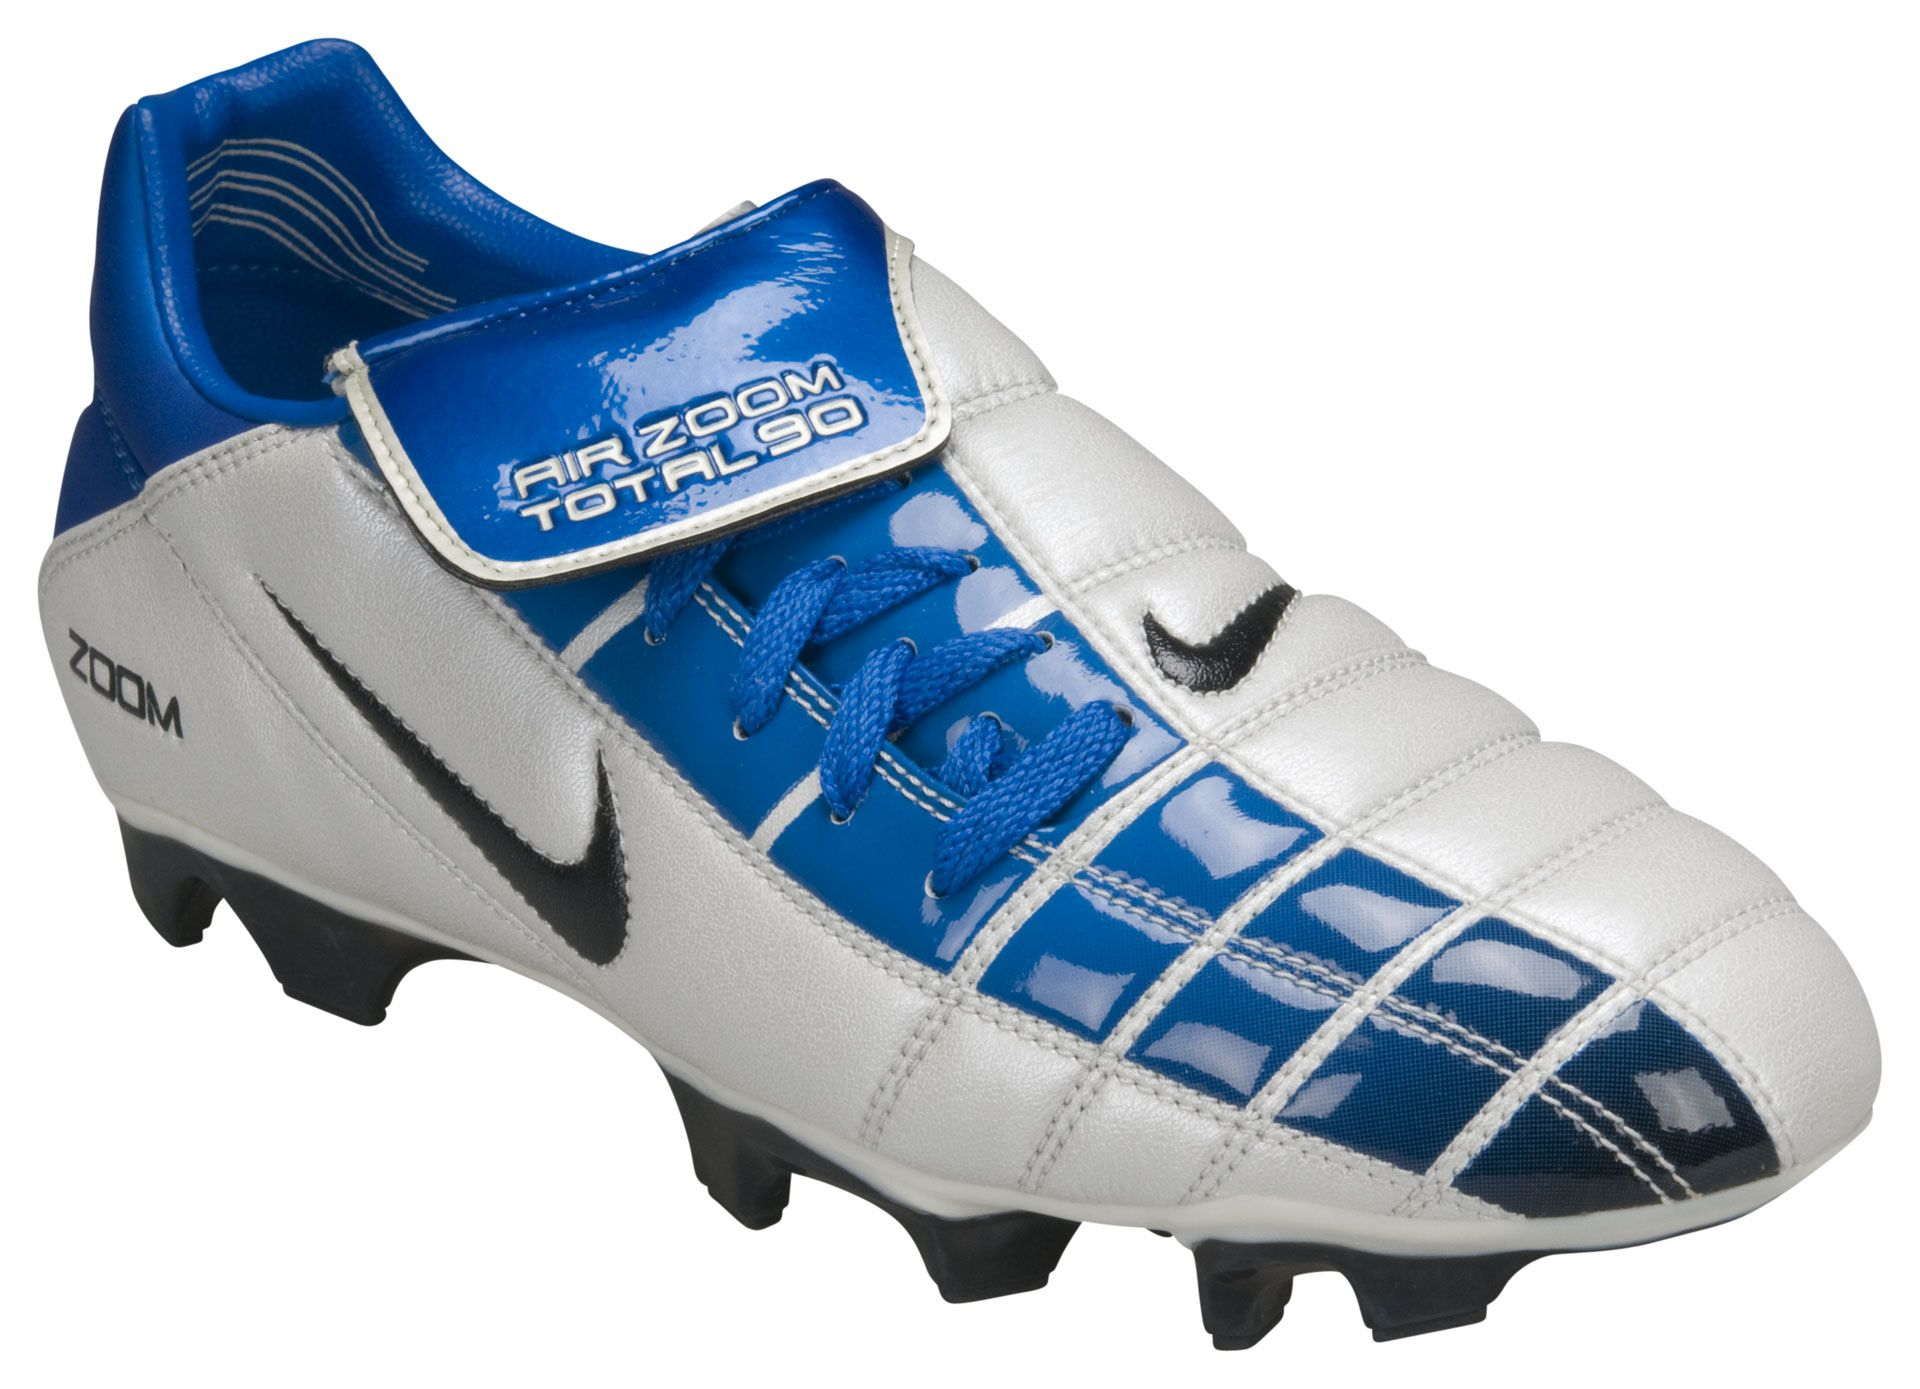 6e3359cccfd Nike Air Zoom Total 90 II FG Jr Footballshoe Nike Football Boots